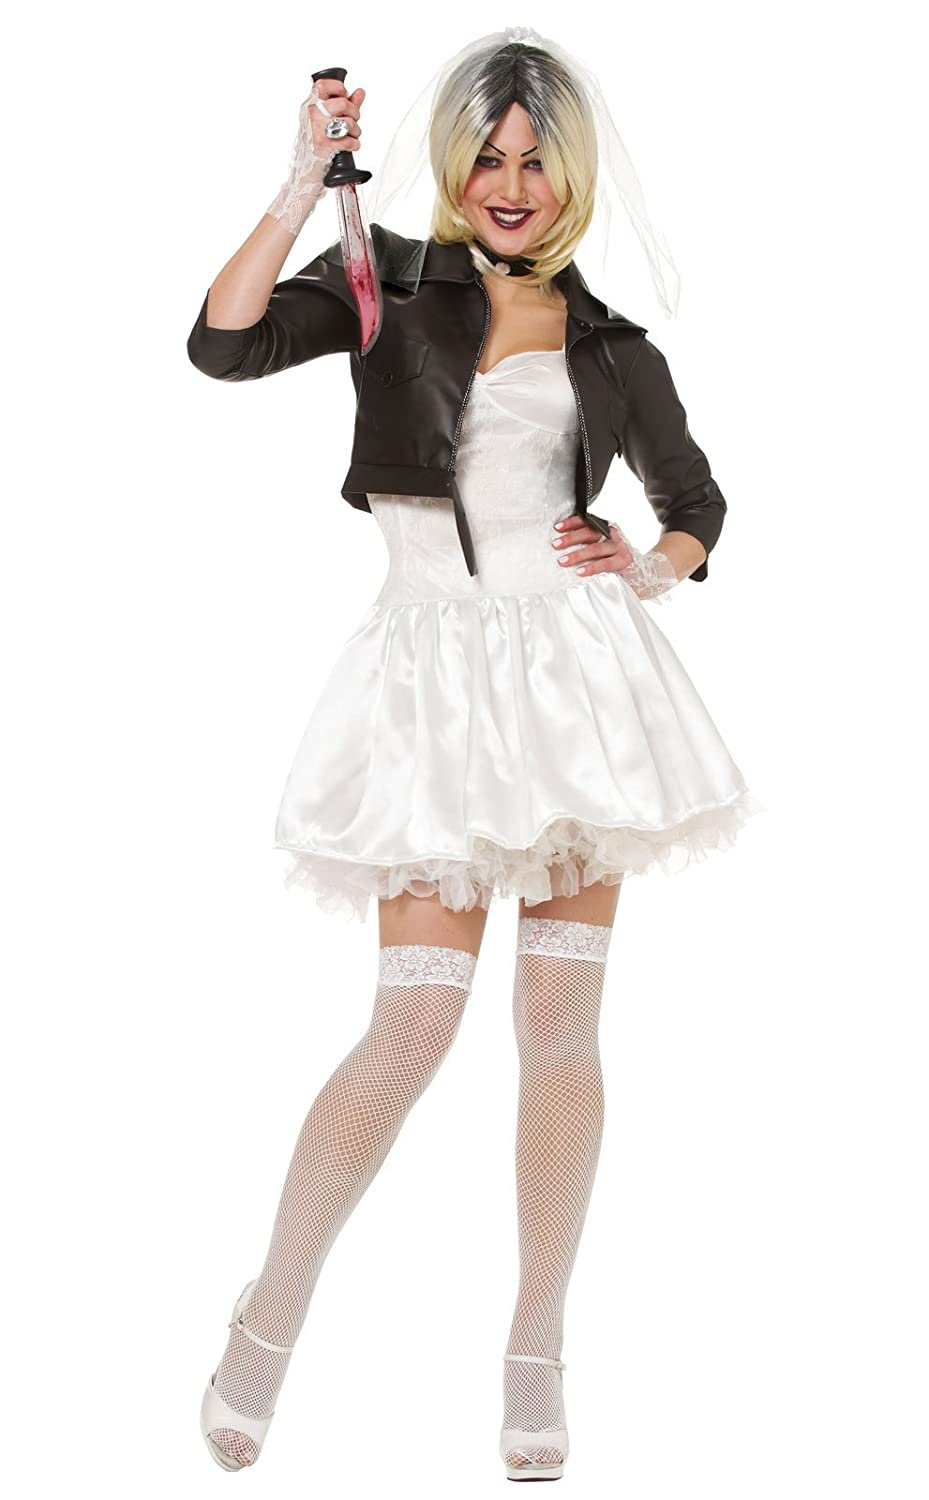 Women's Licensed Bride Of Chucky Costume